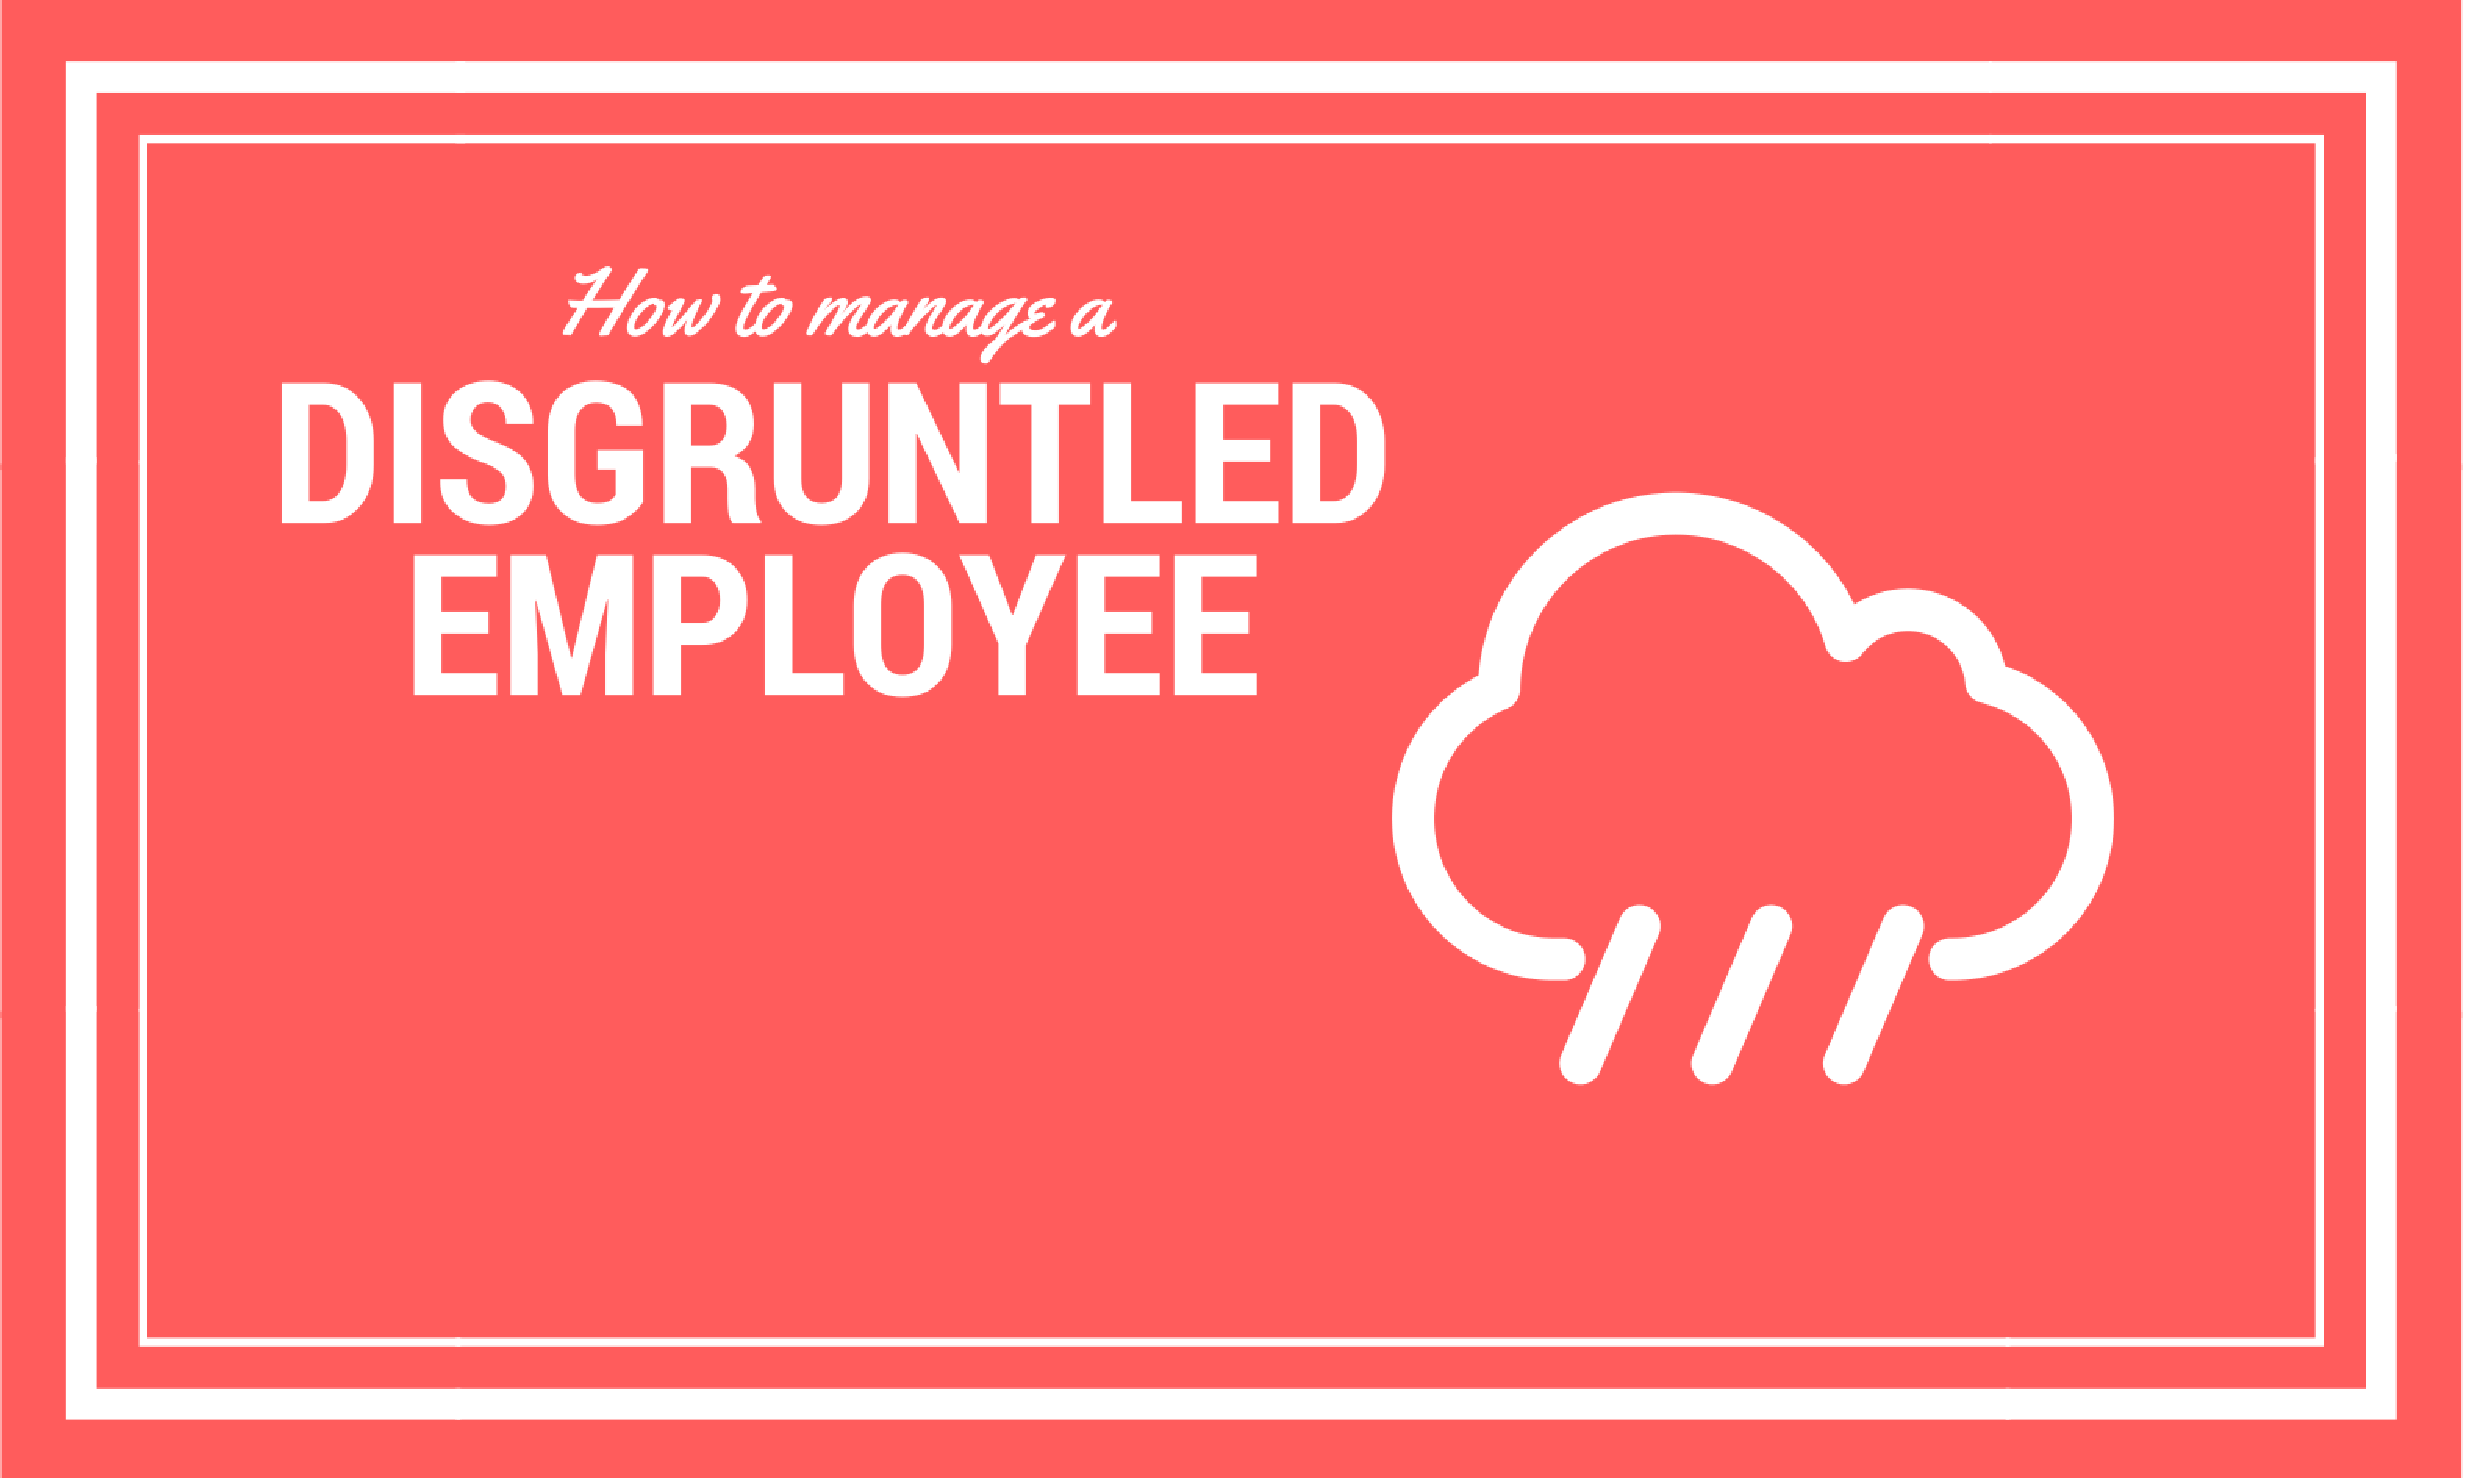 How to manage a disgruntled employee